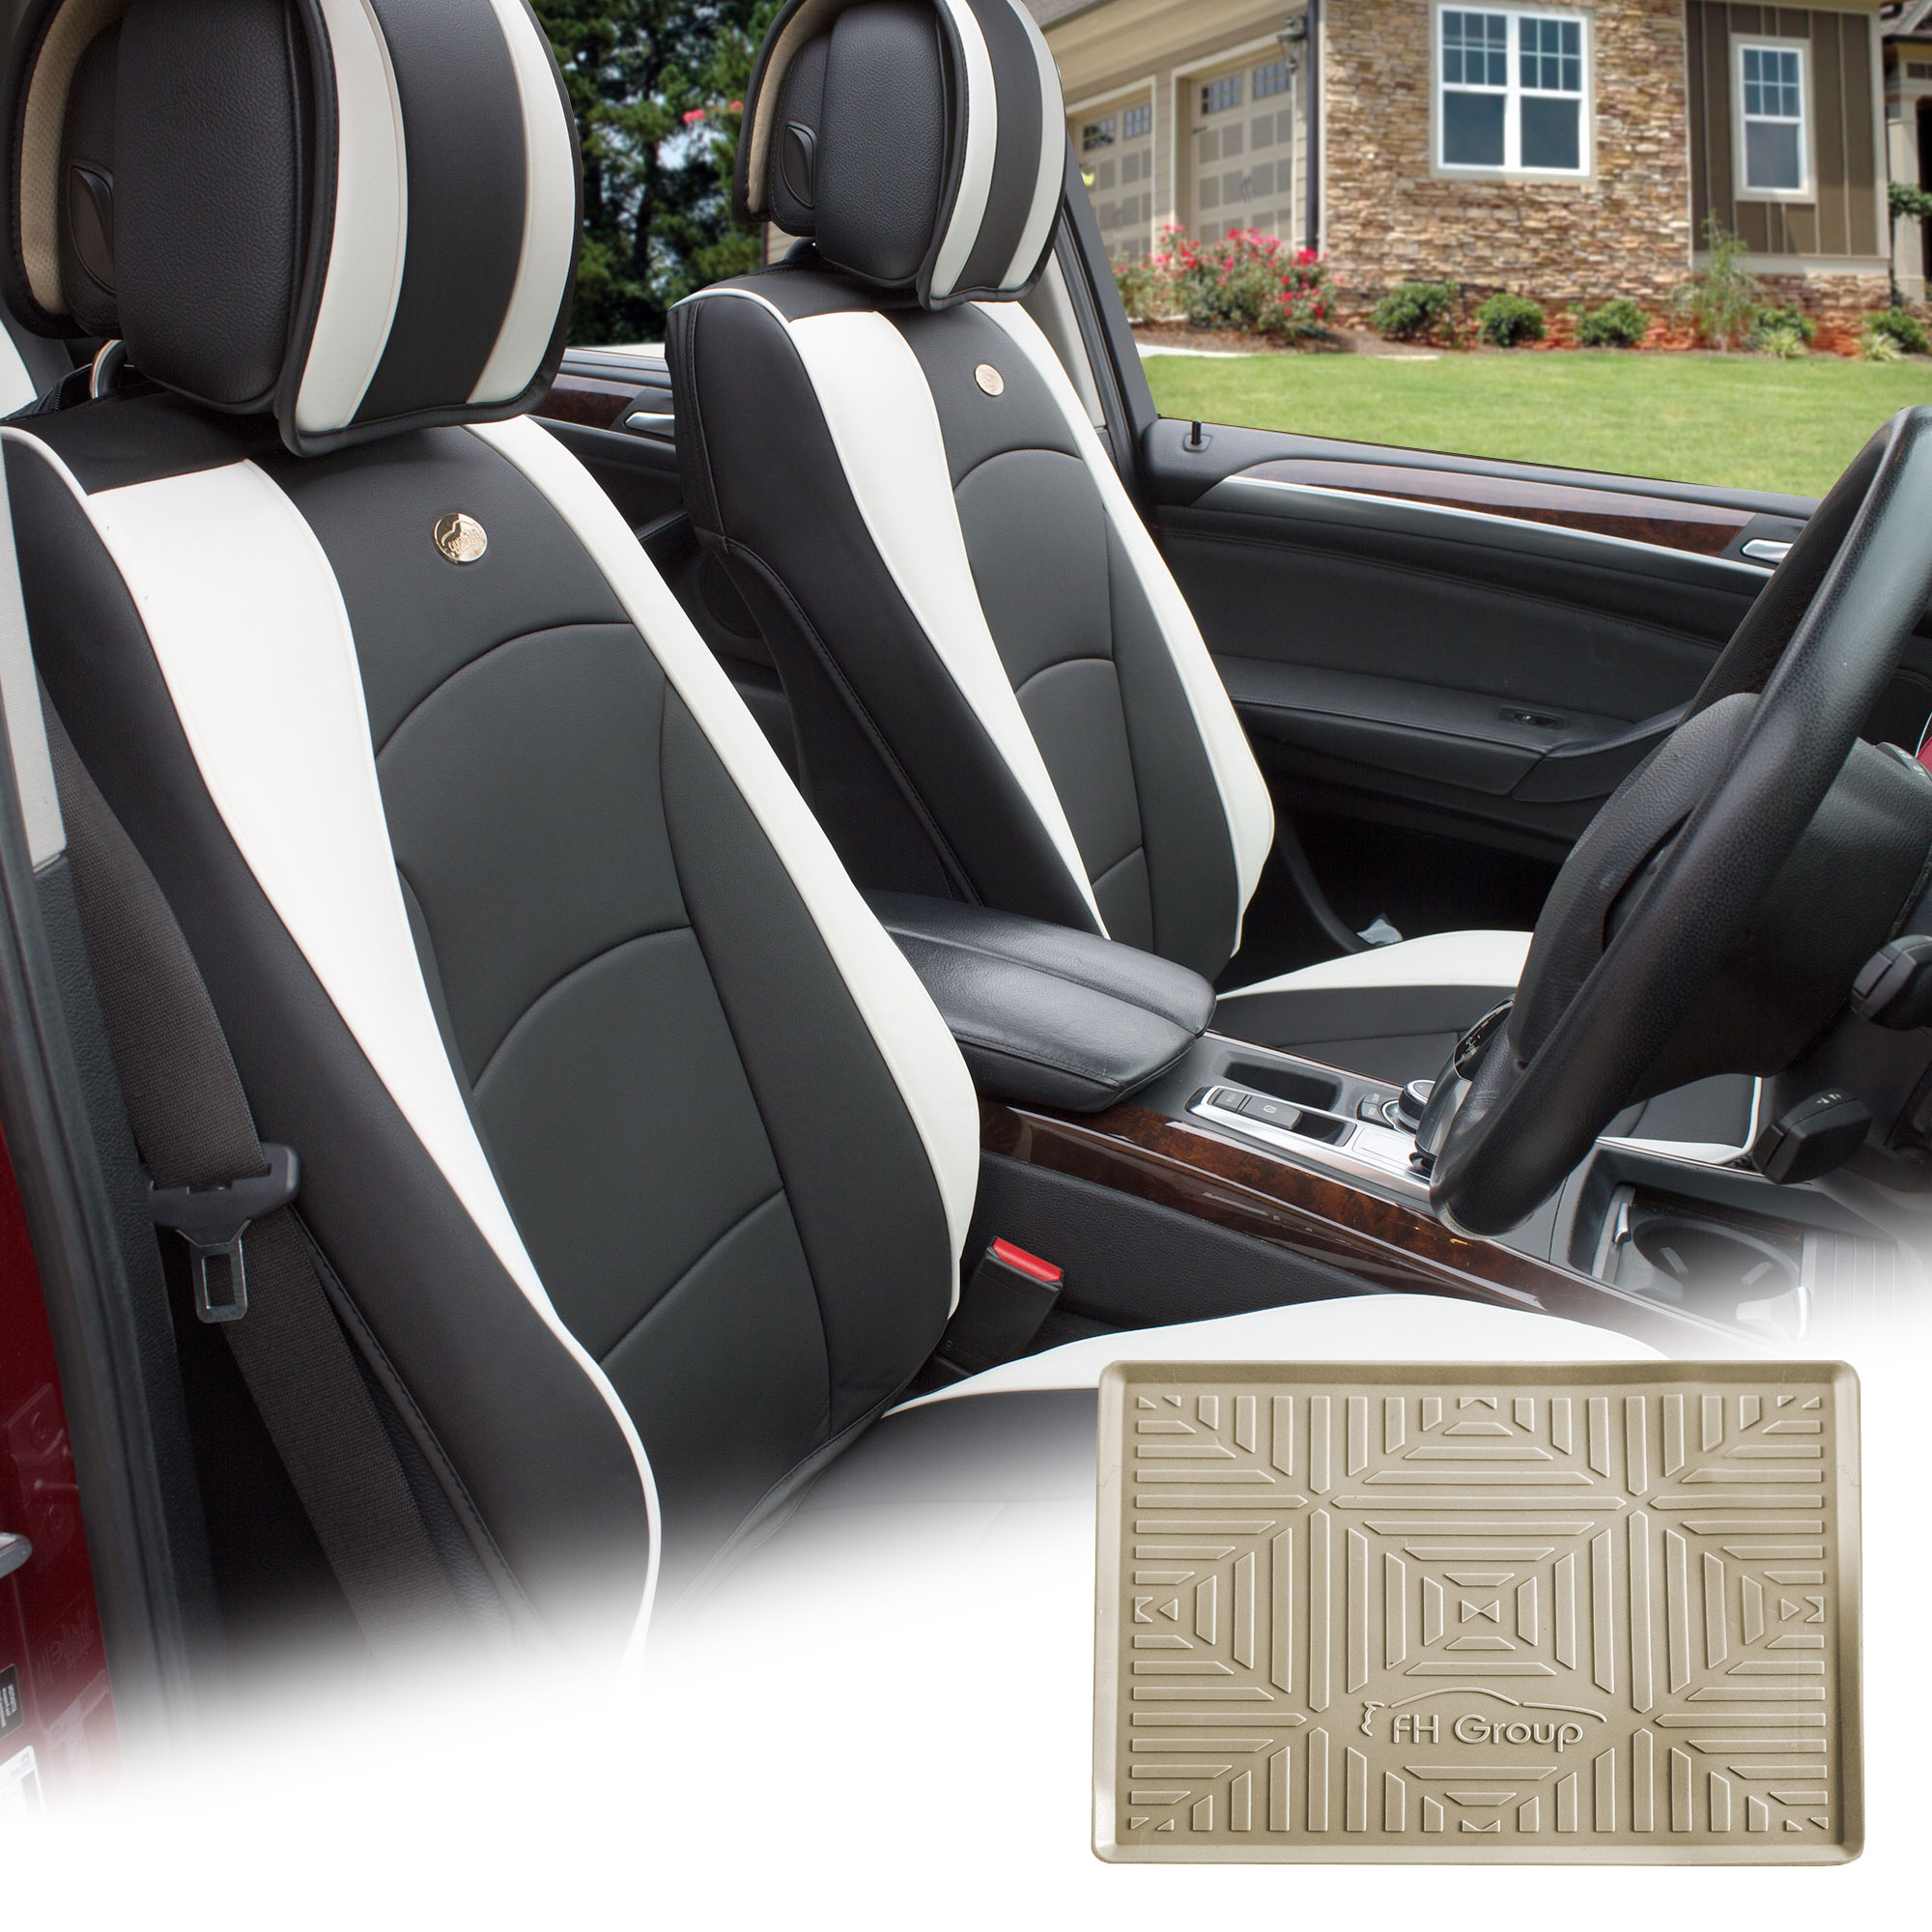 FH Group Black White PU Leather Front Bucket Seat Cushion Covers for Auto Car SUV Truck Van with Beige Dash Mat Combo